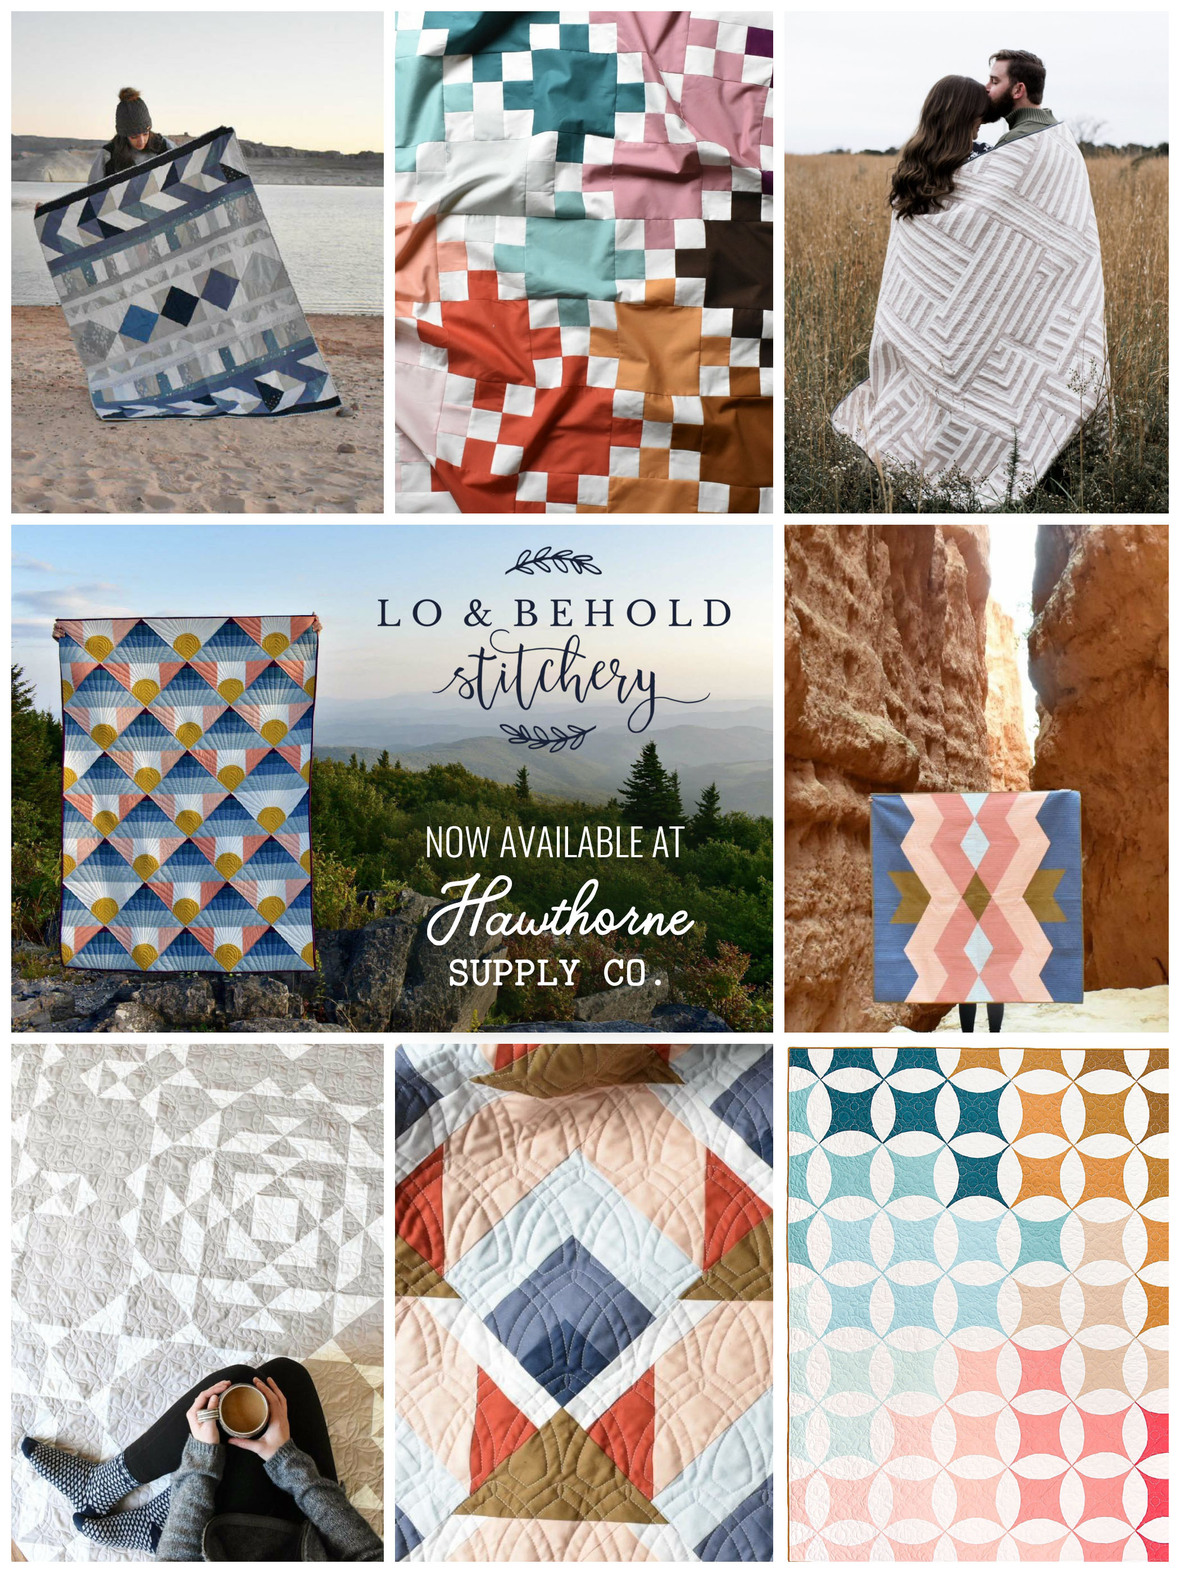 Lo and Behold Stitchery Quilt Patterns at Hawthorne Supply Co. Lifestyle Shots Final